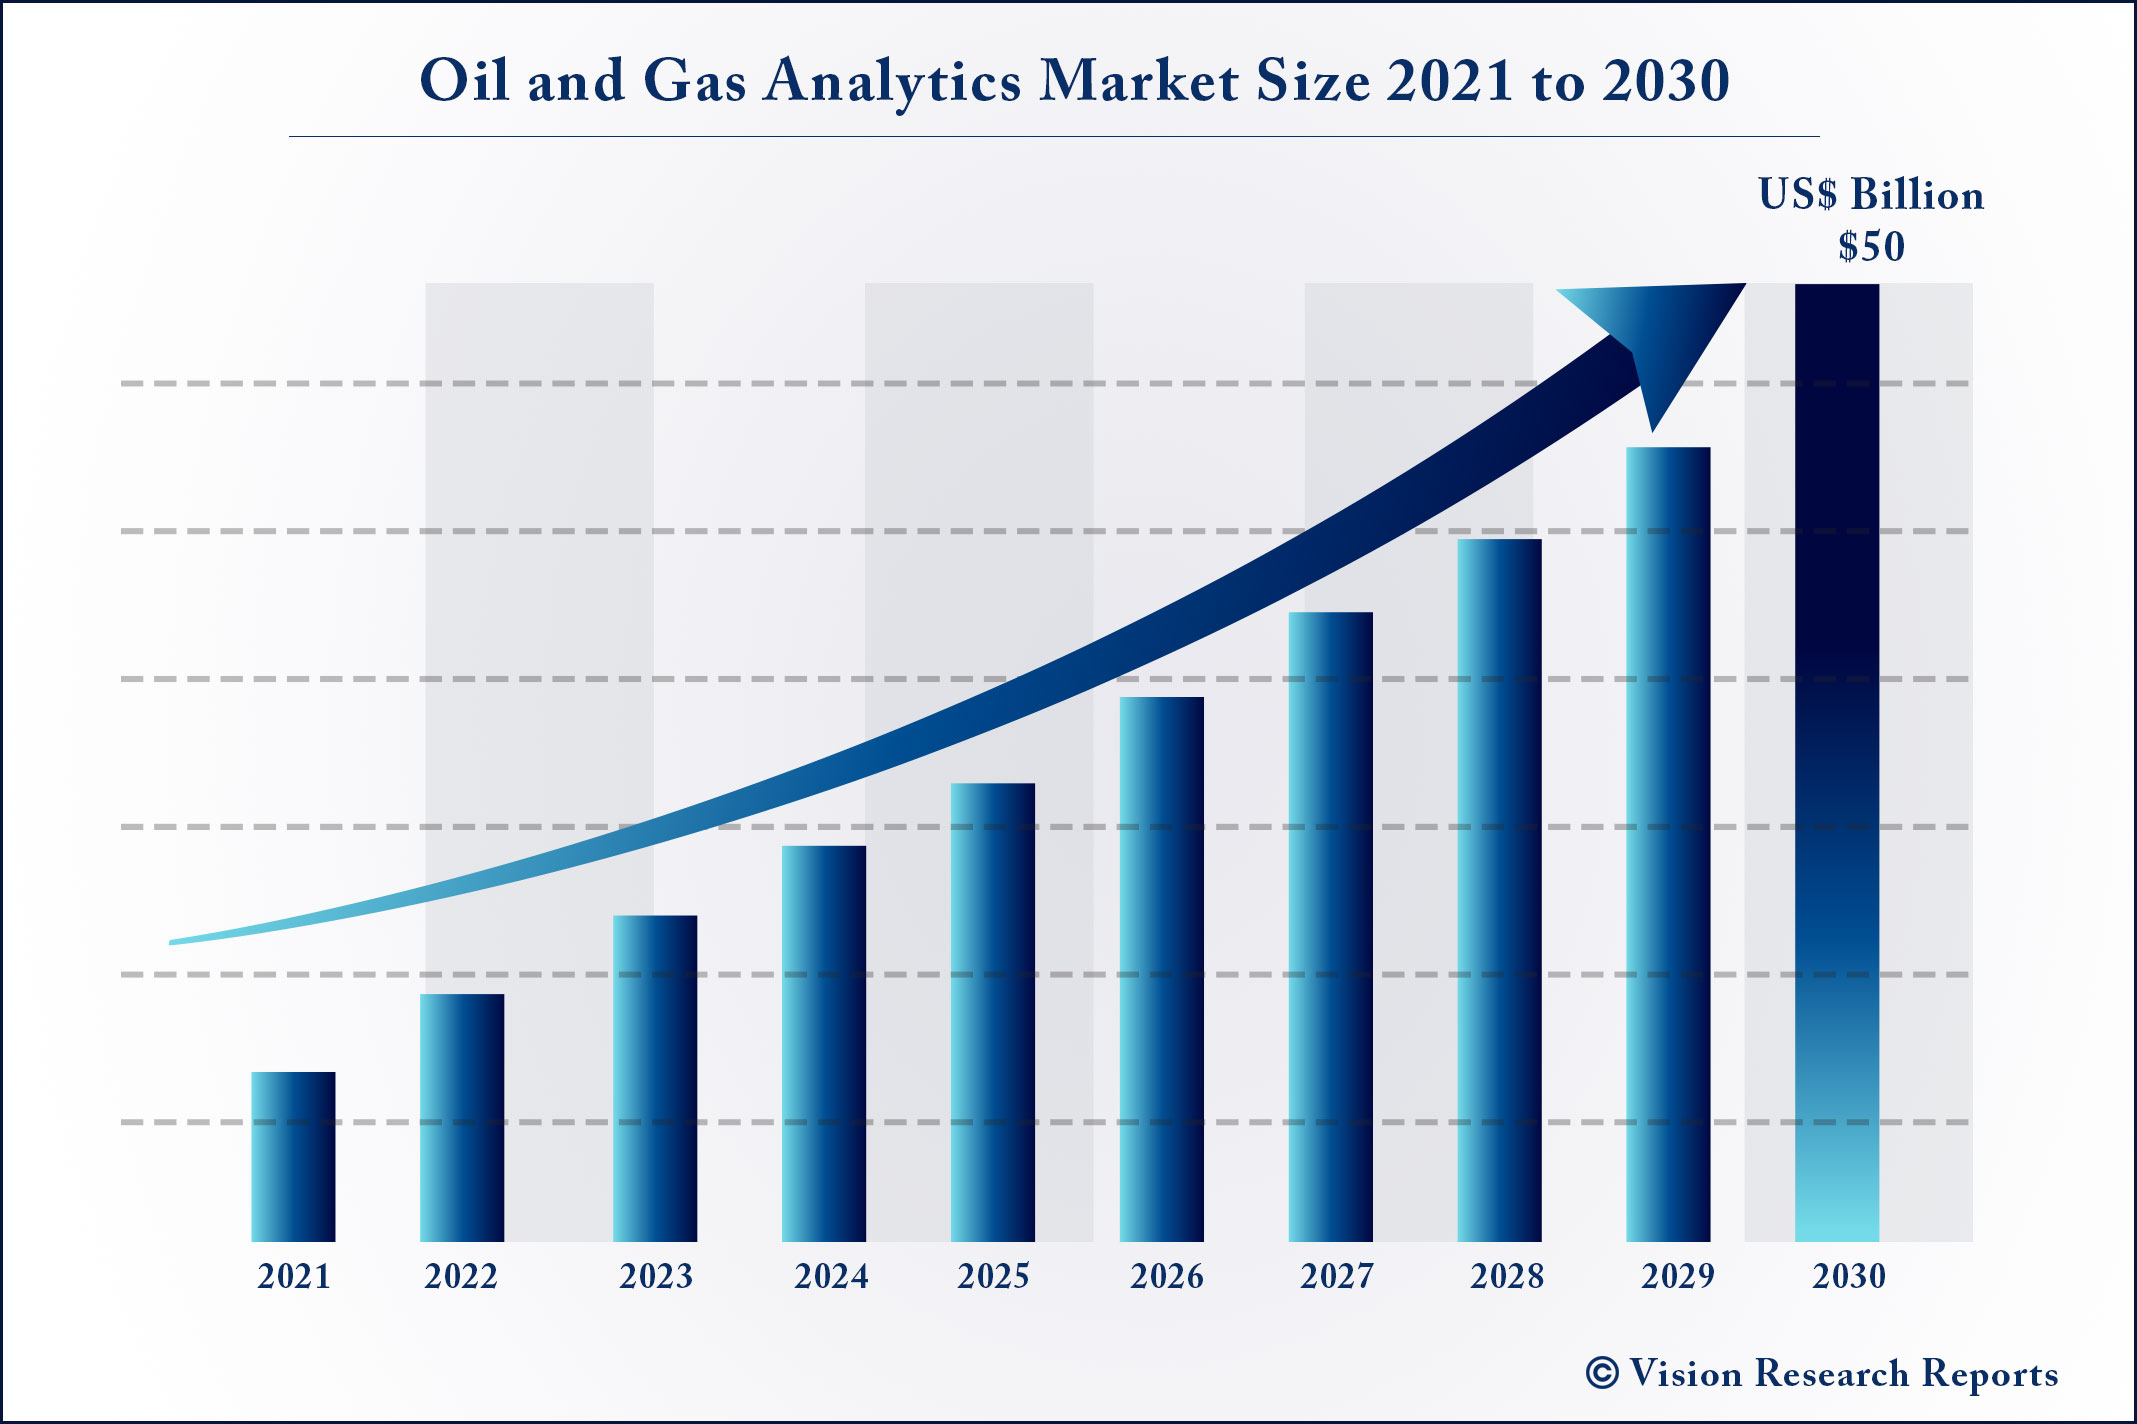 Oil and Gas Analytics Market Size 2021 to 2030